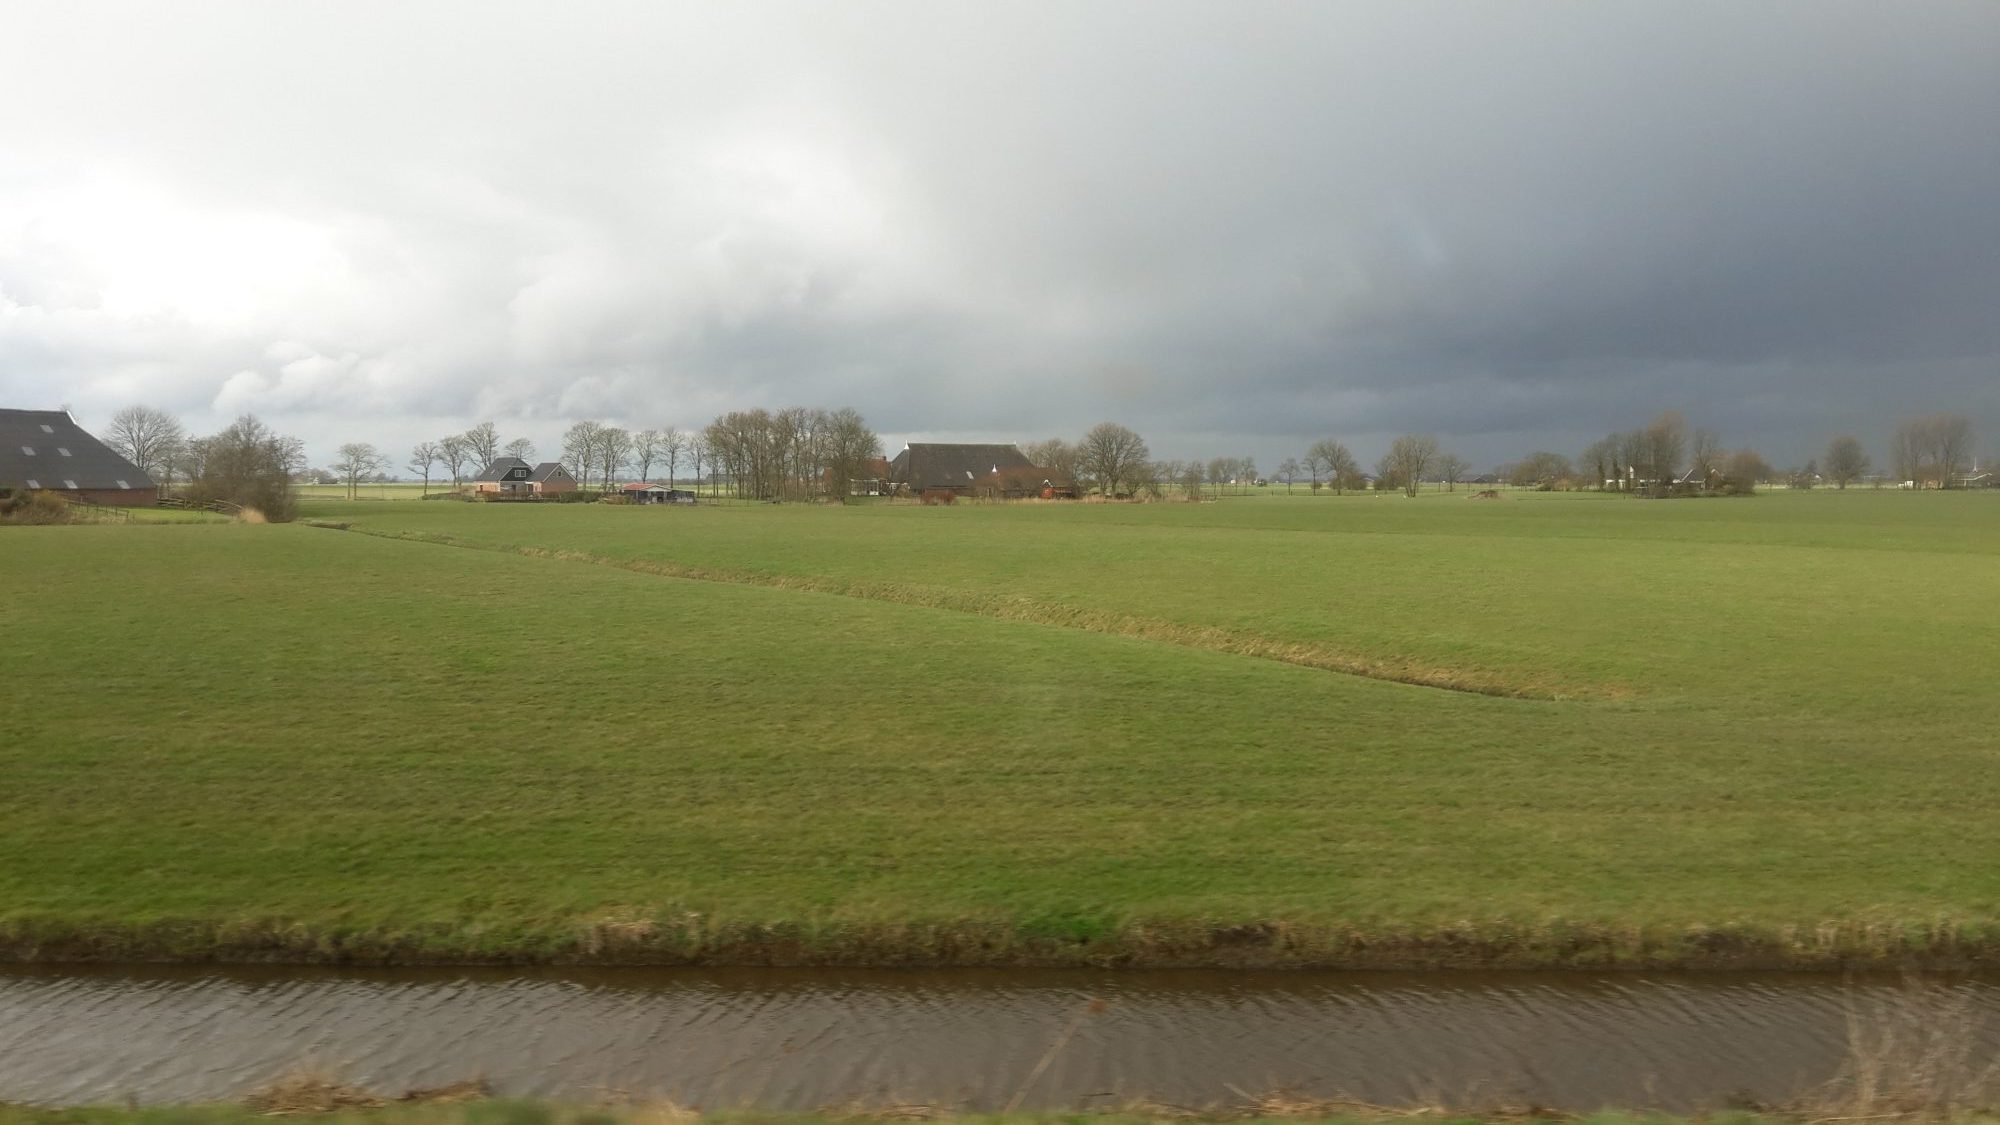 a rainy day somewhere on my commute between Groningen and Leeuwarden. Notice that fields are not delineated by fences, but rather by water-filled ditches.